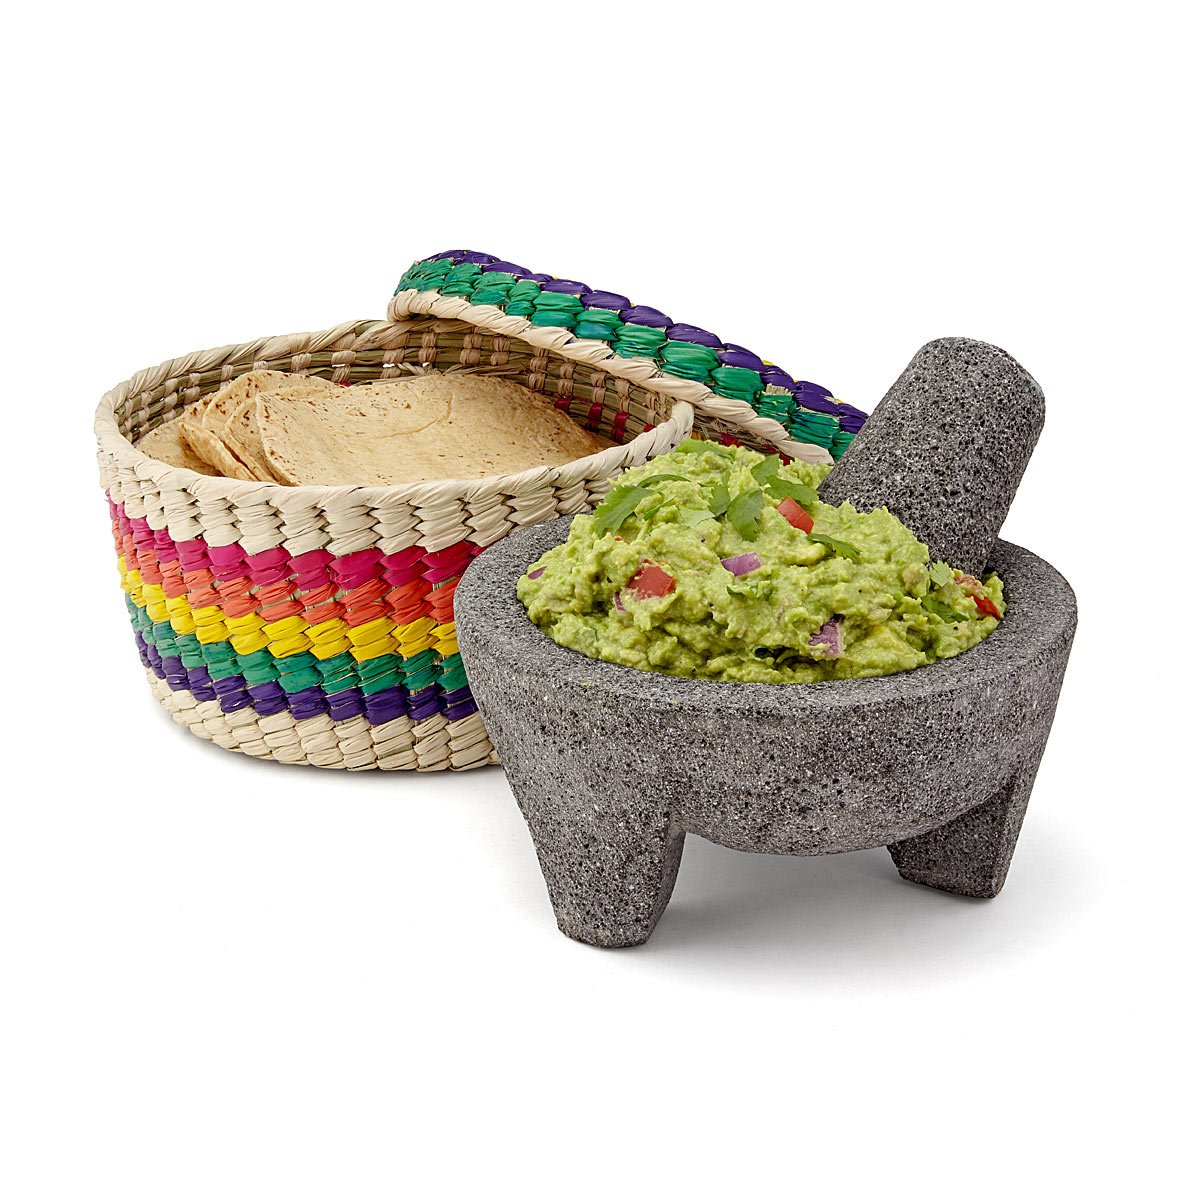 Molcajete with Tortilla Basket | UncommonGoods